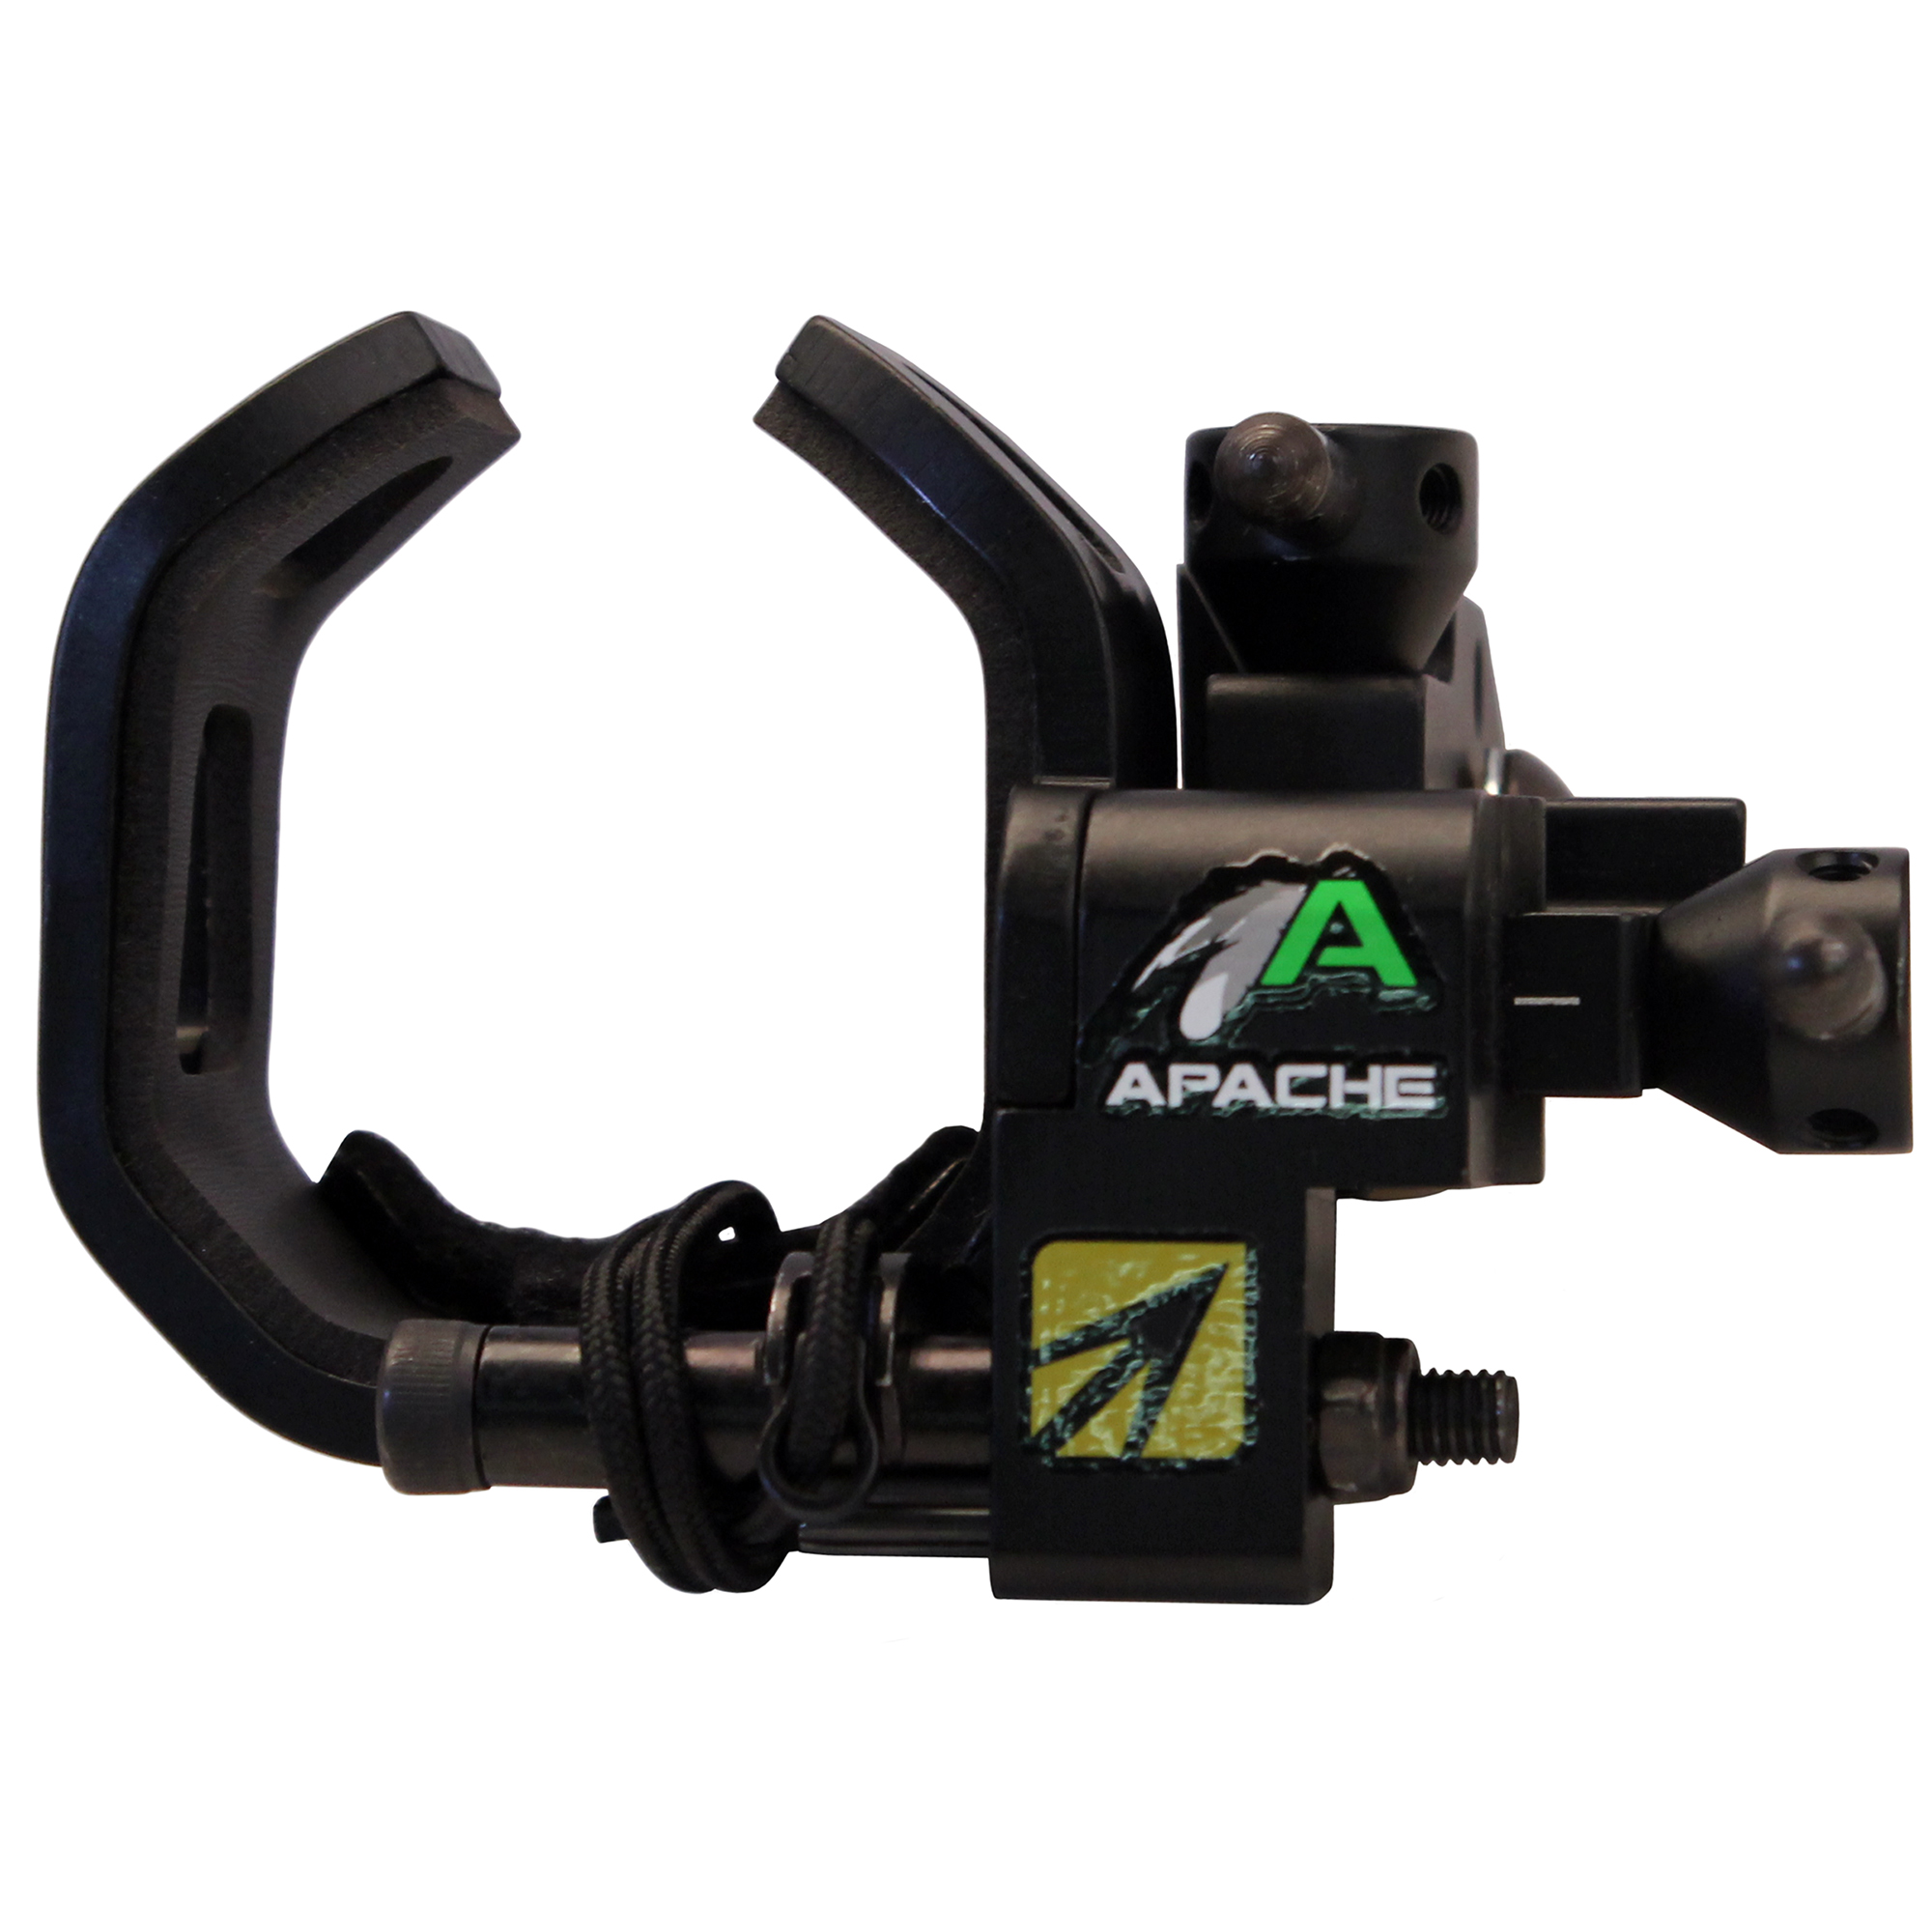 New Archery Products Apache Drop-Away Arrow Rest, Black